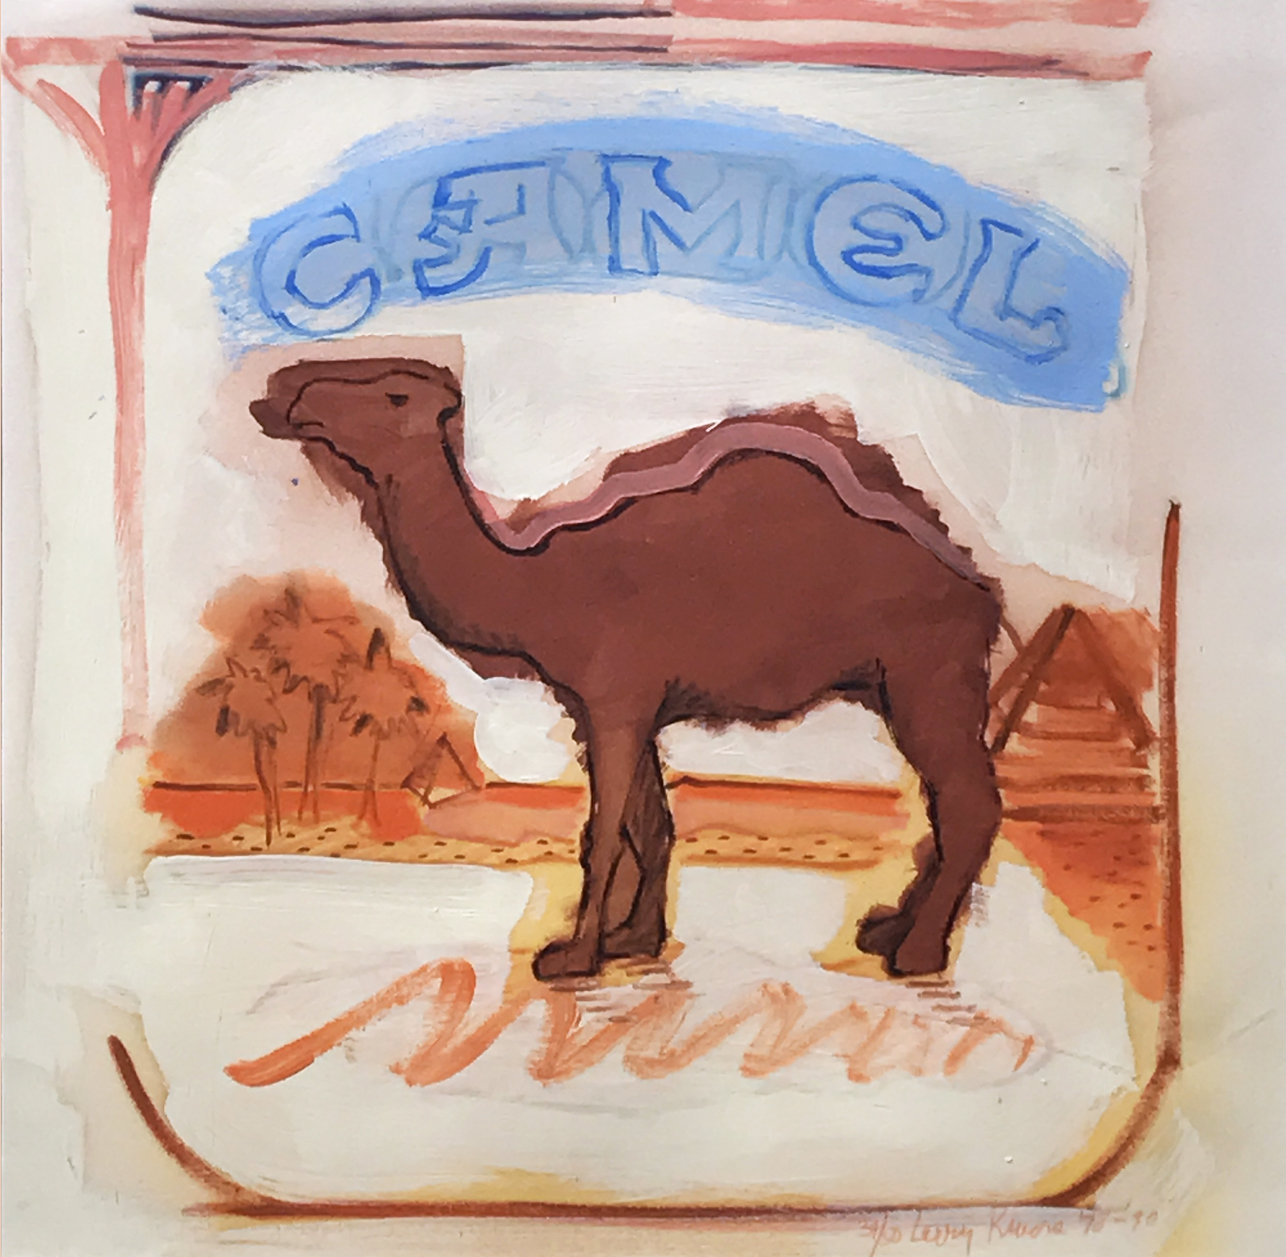 1.Larry Rivers. Brushed Camel, 1978-1990. Silkscreen and litho with hand painting, ed. 34/50, 22 ½ x 23 ½ in.